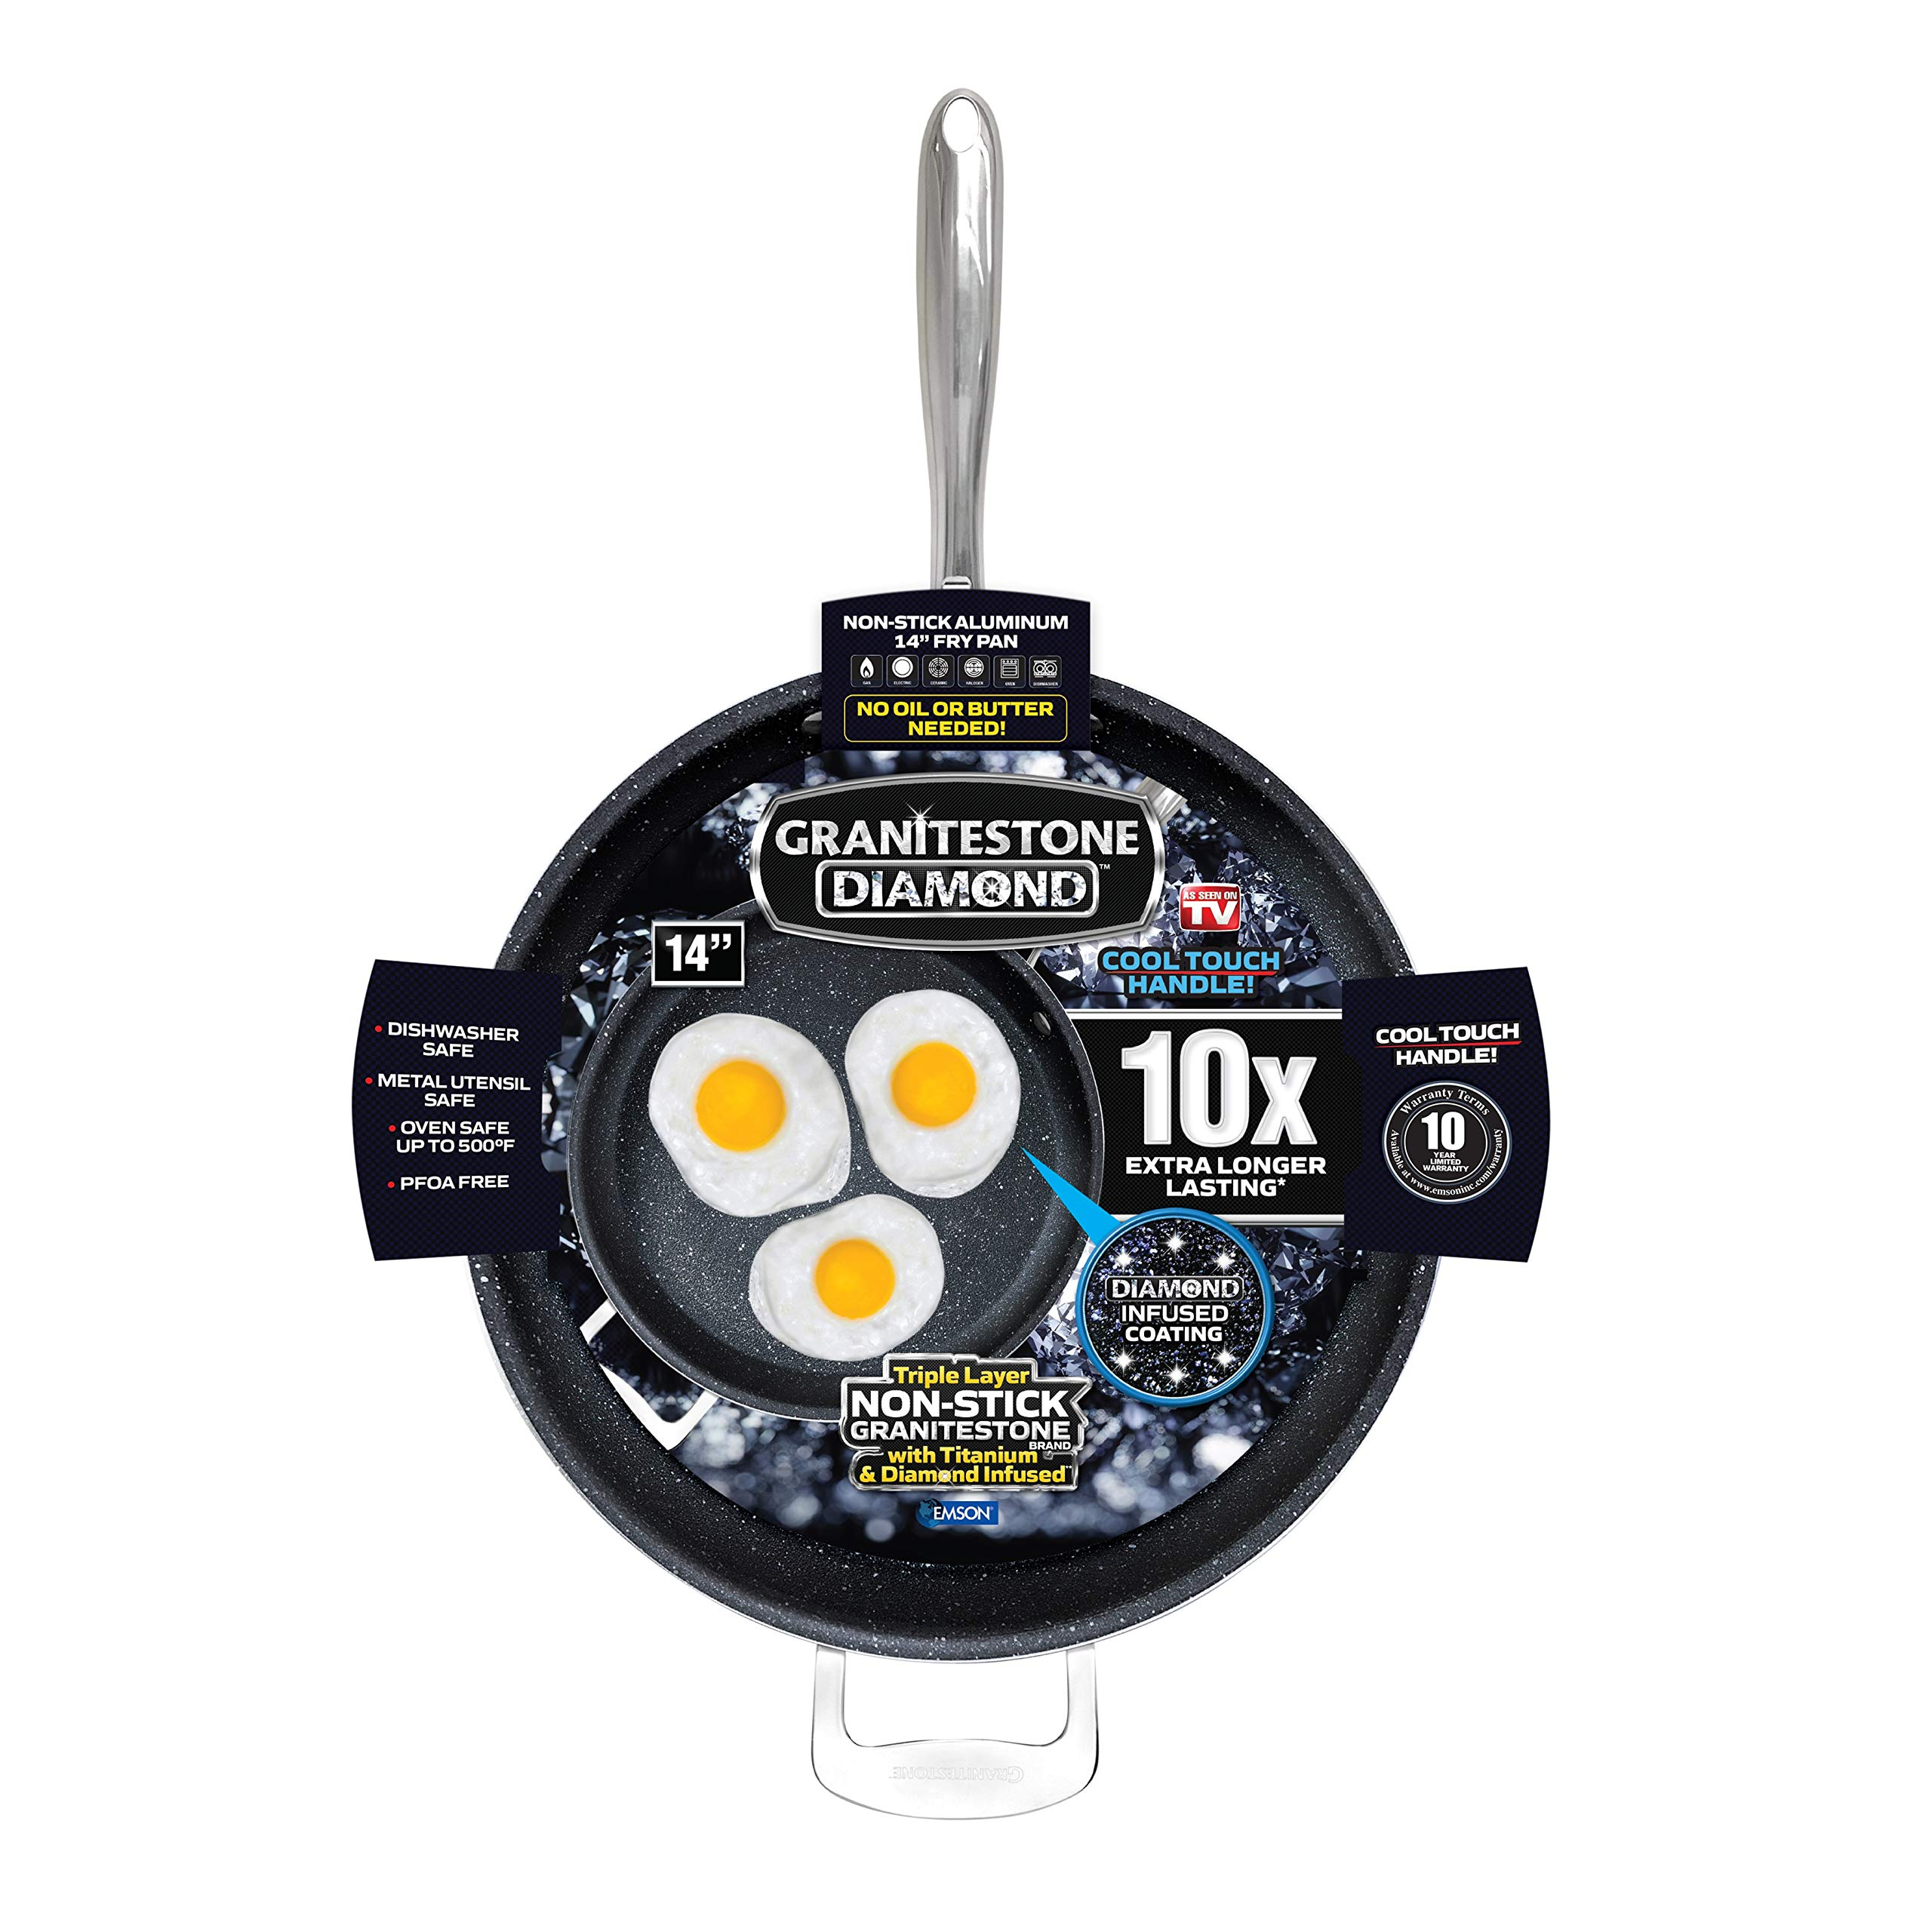 Granite Stone 14'' Extra Large Frying Pan Skillet, Triple Coated with Ultra Nonstick Mineral Coating & Heavy Duty Stainless Steel Helper Handle